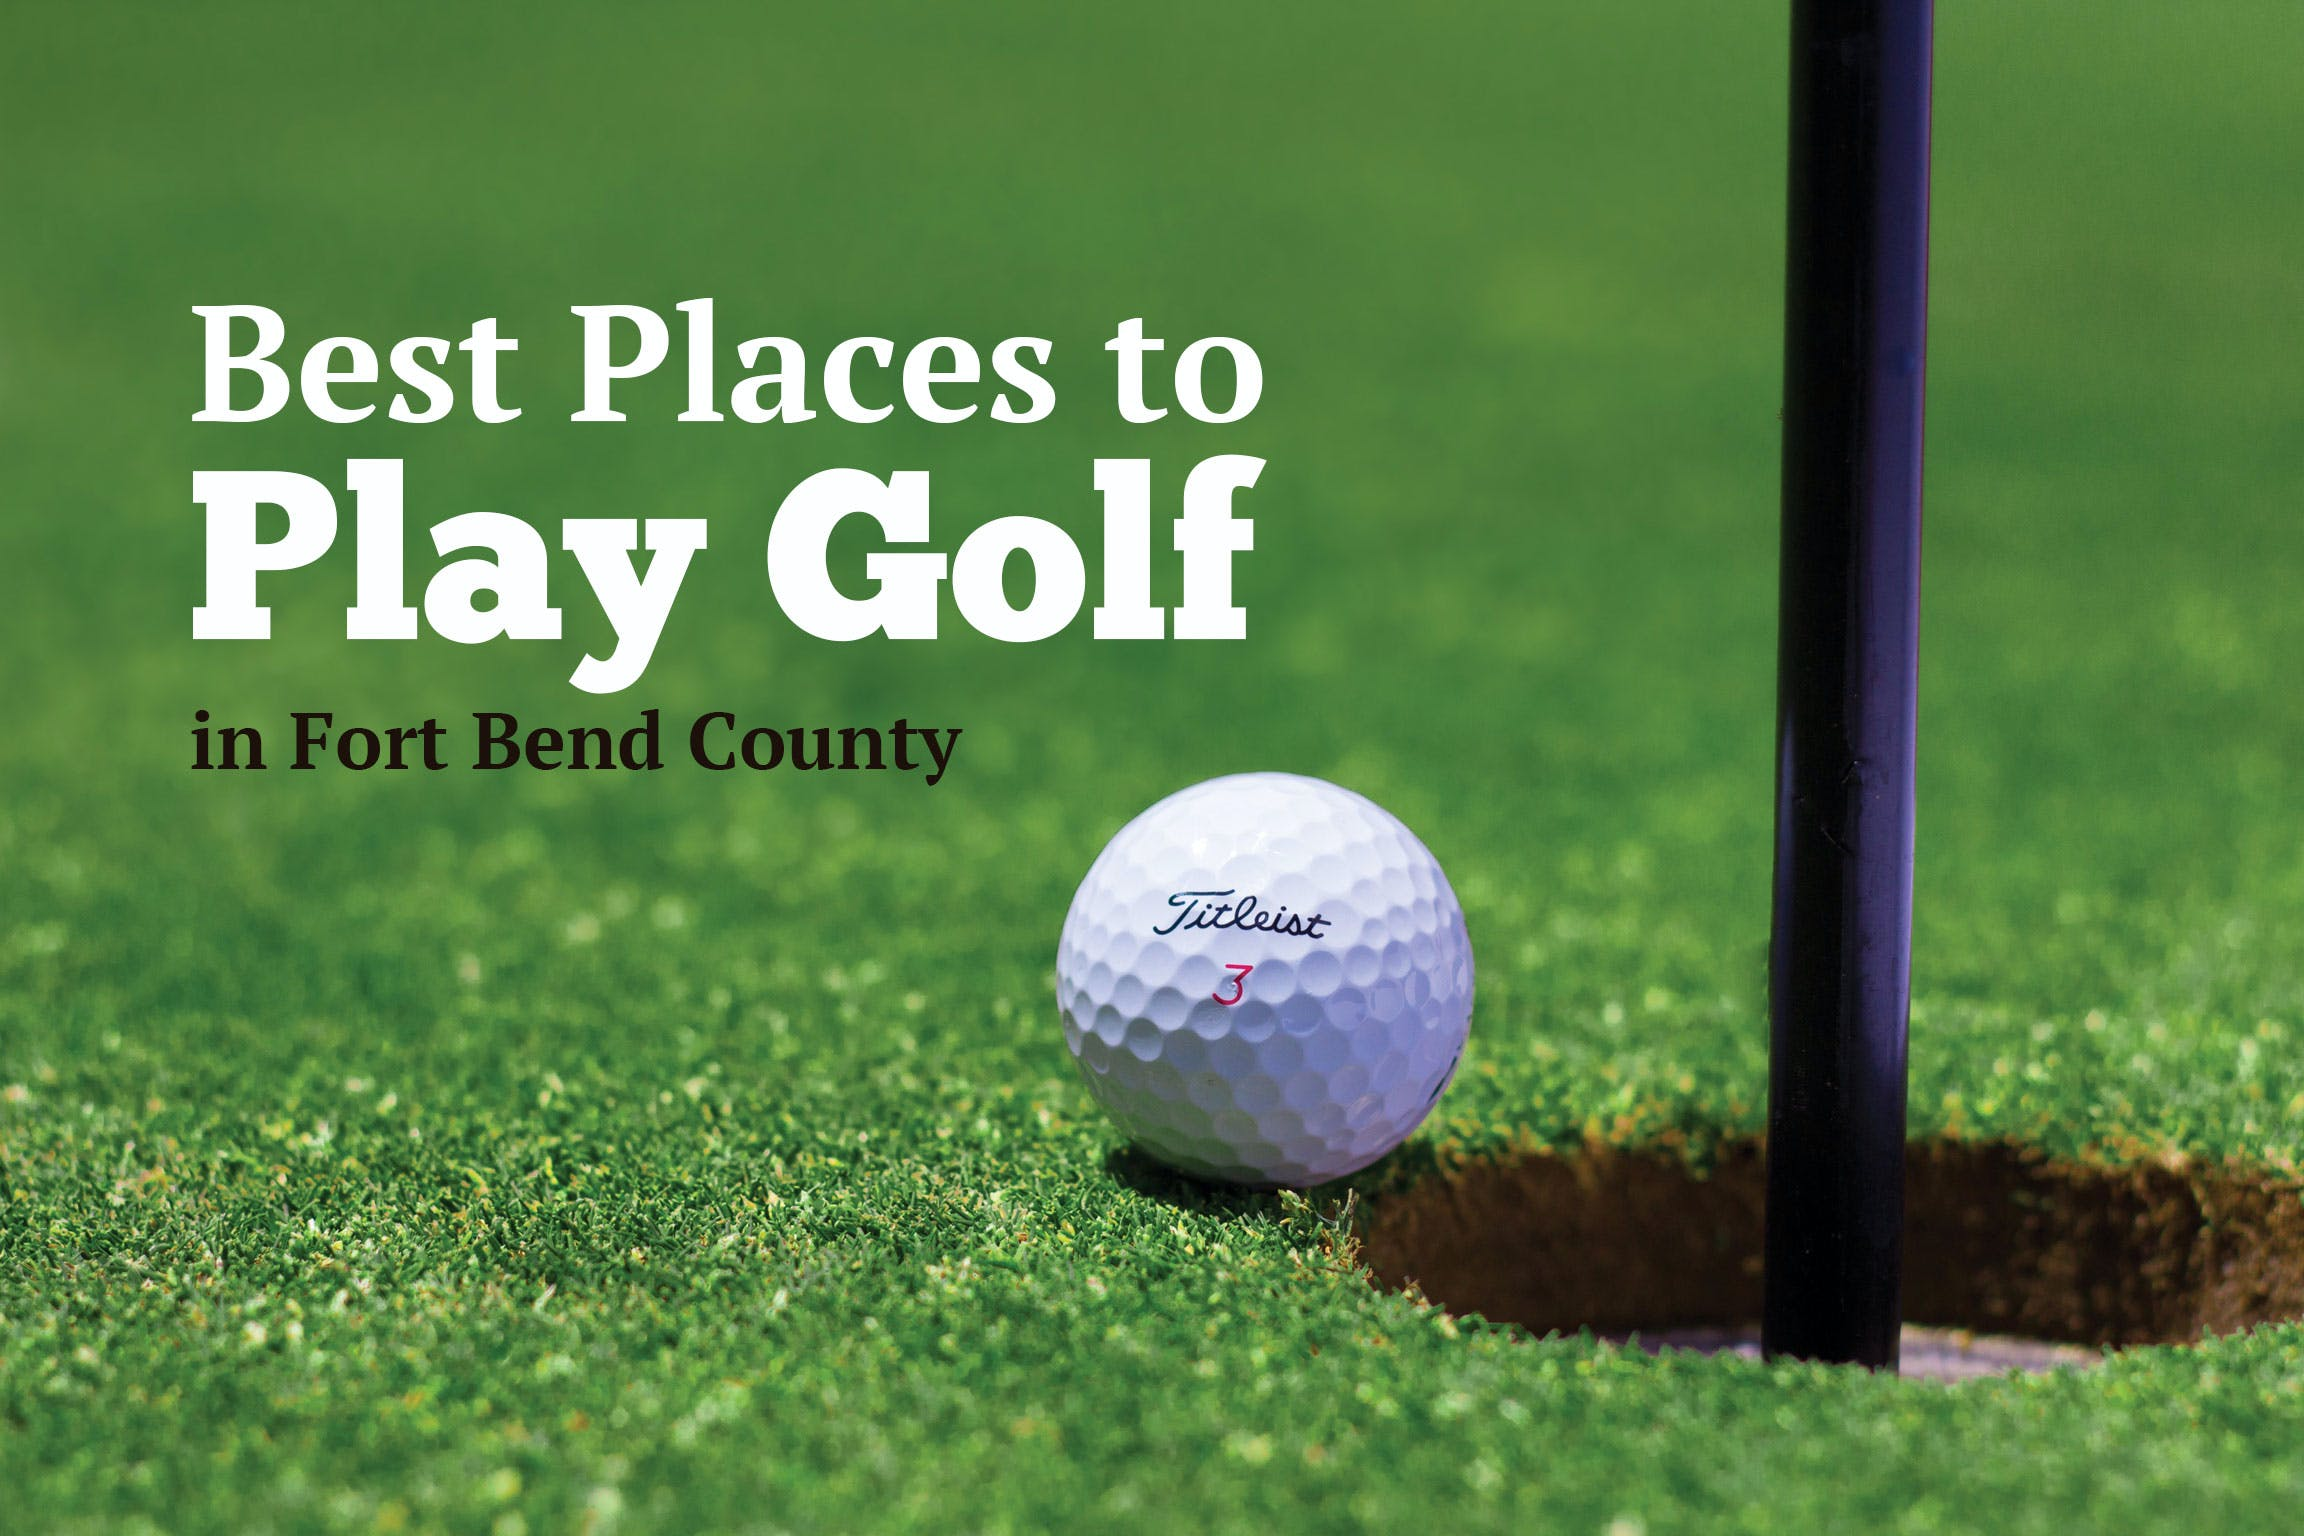 best-places-to-play-golf-in-fort-bend-county-texas